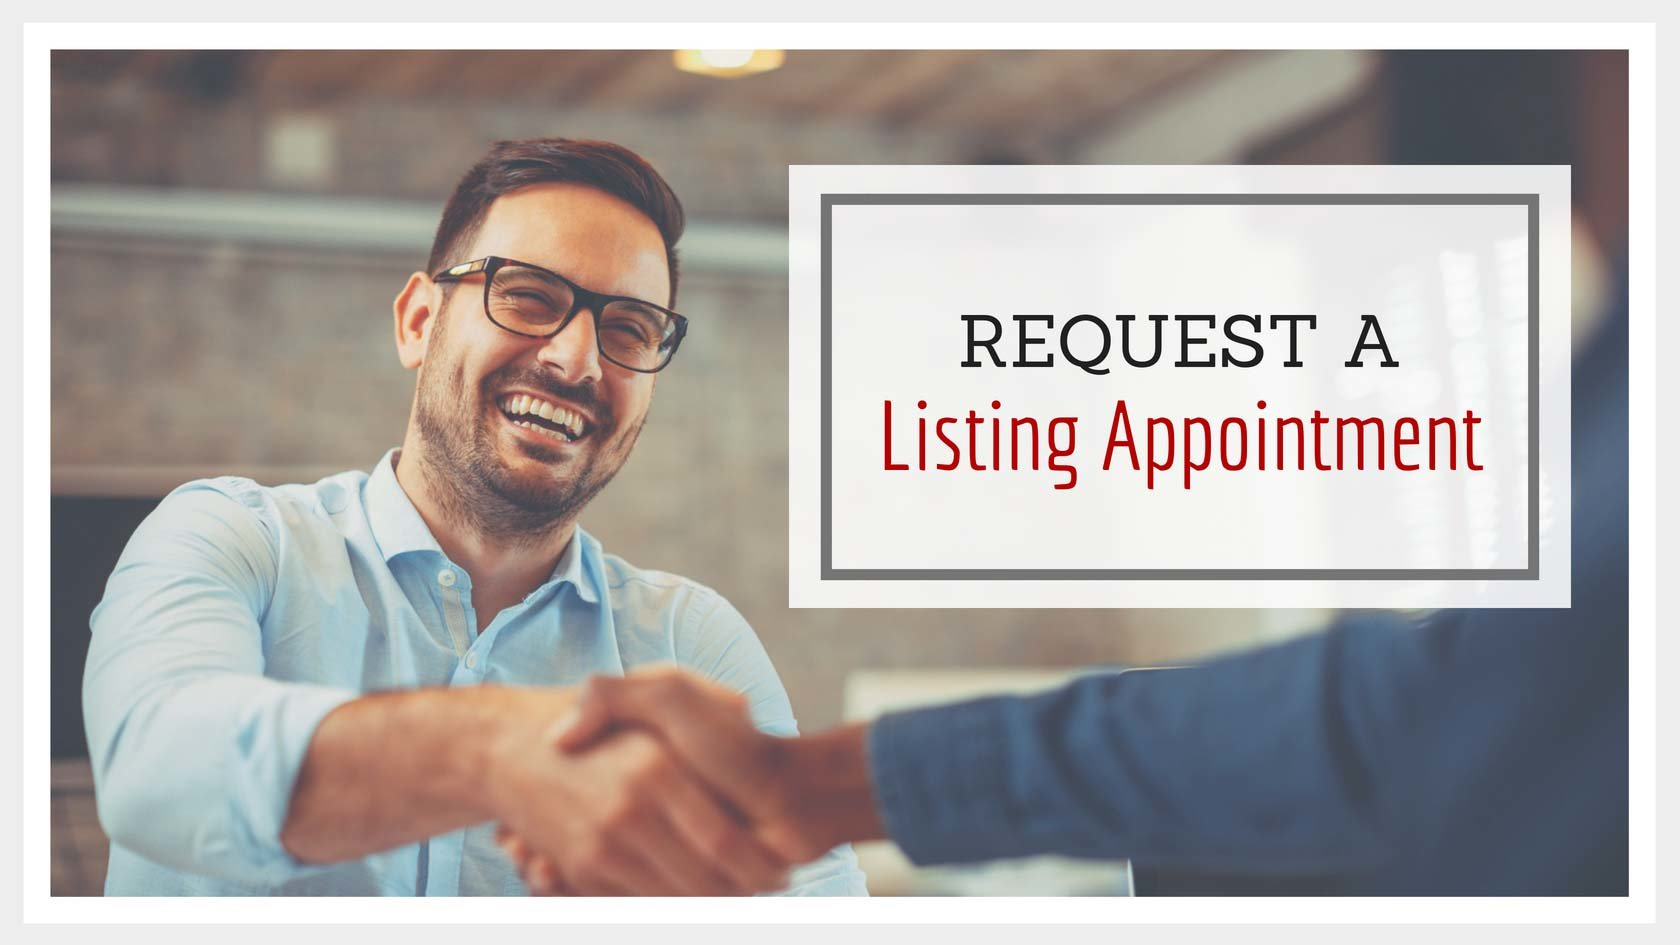 Request a Listing Appointment